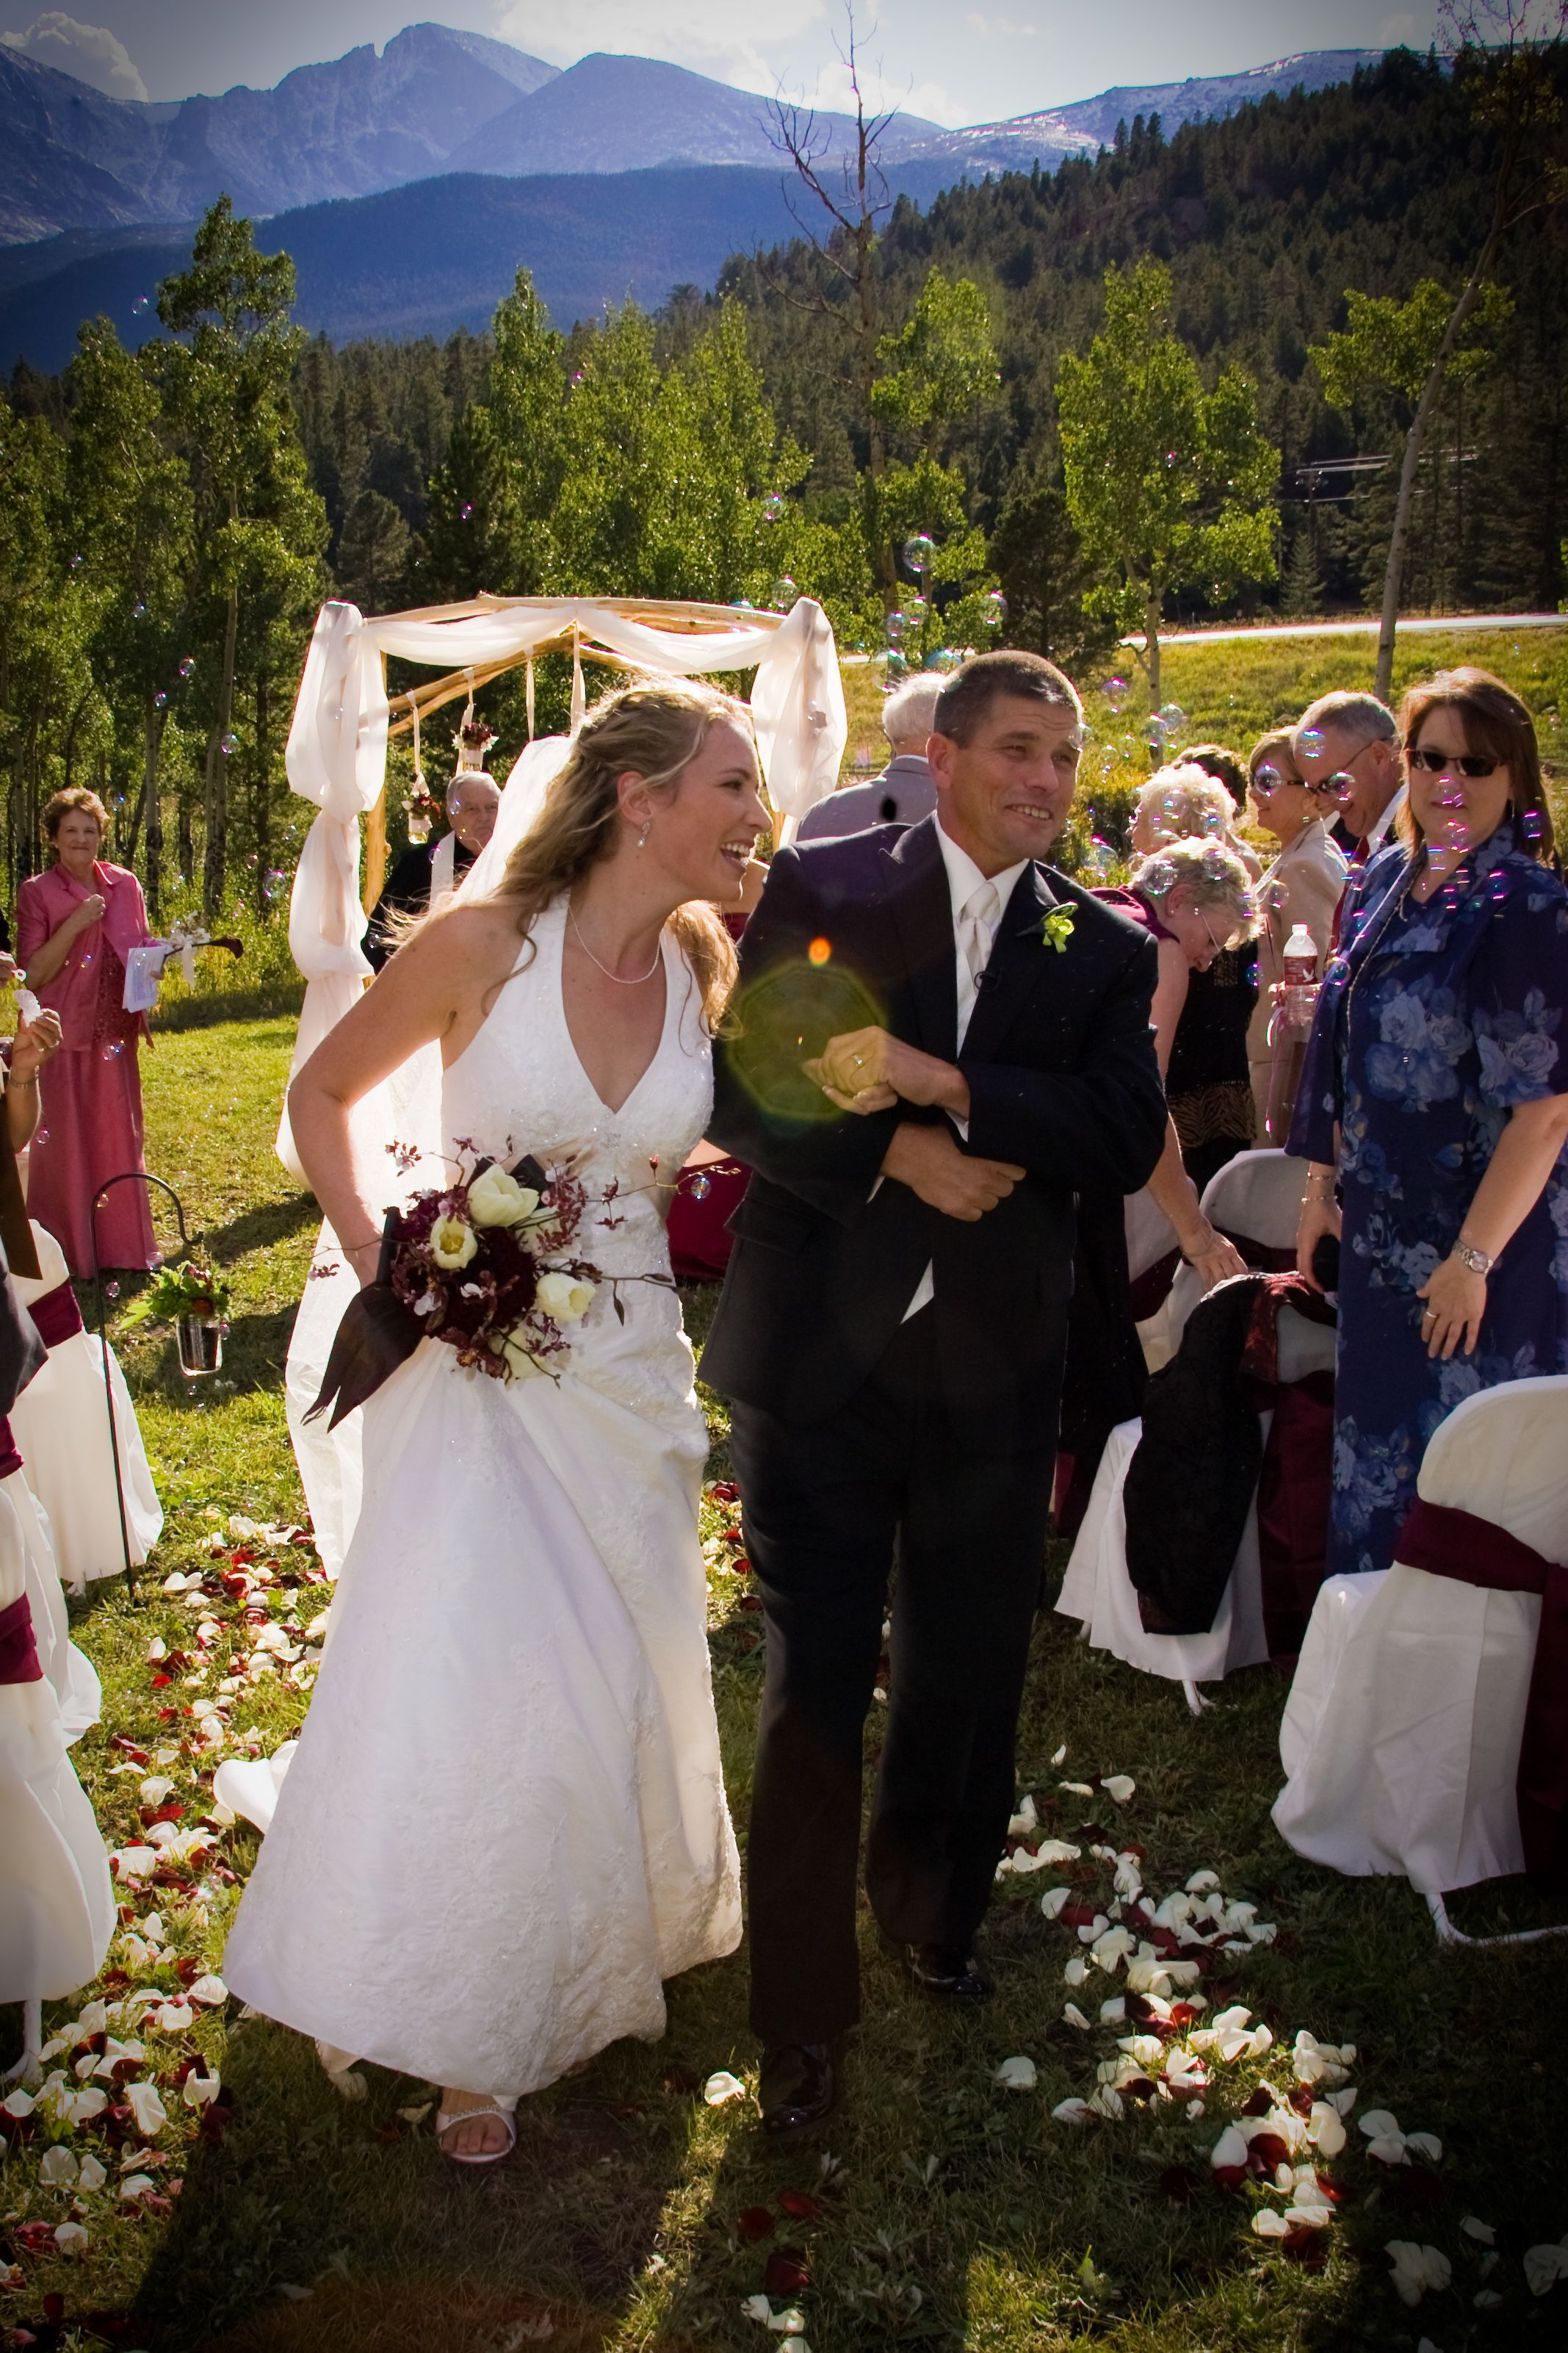 Ceremony, Flowers & Decor, Fall, Wedding, Park, Mountain, Estes, Custom weddings of colorado